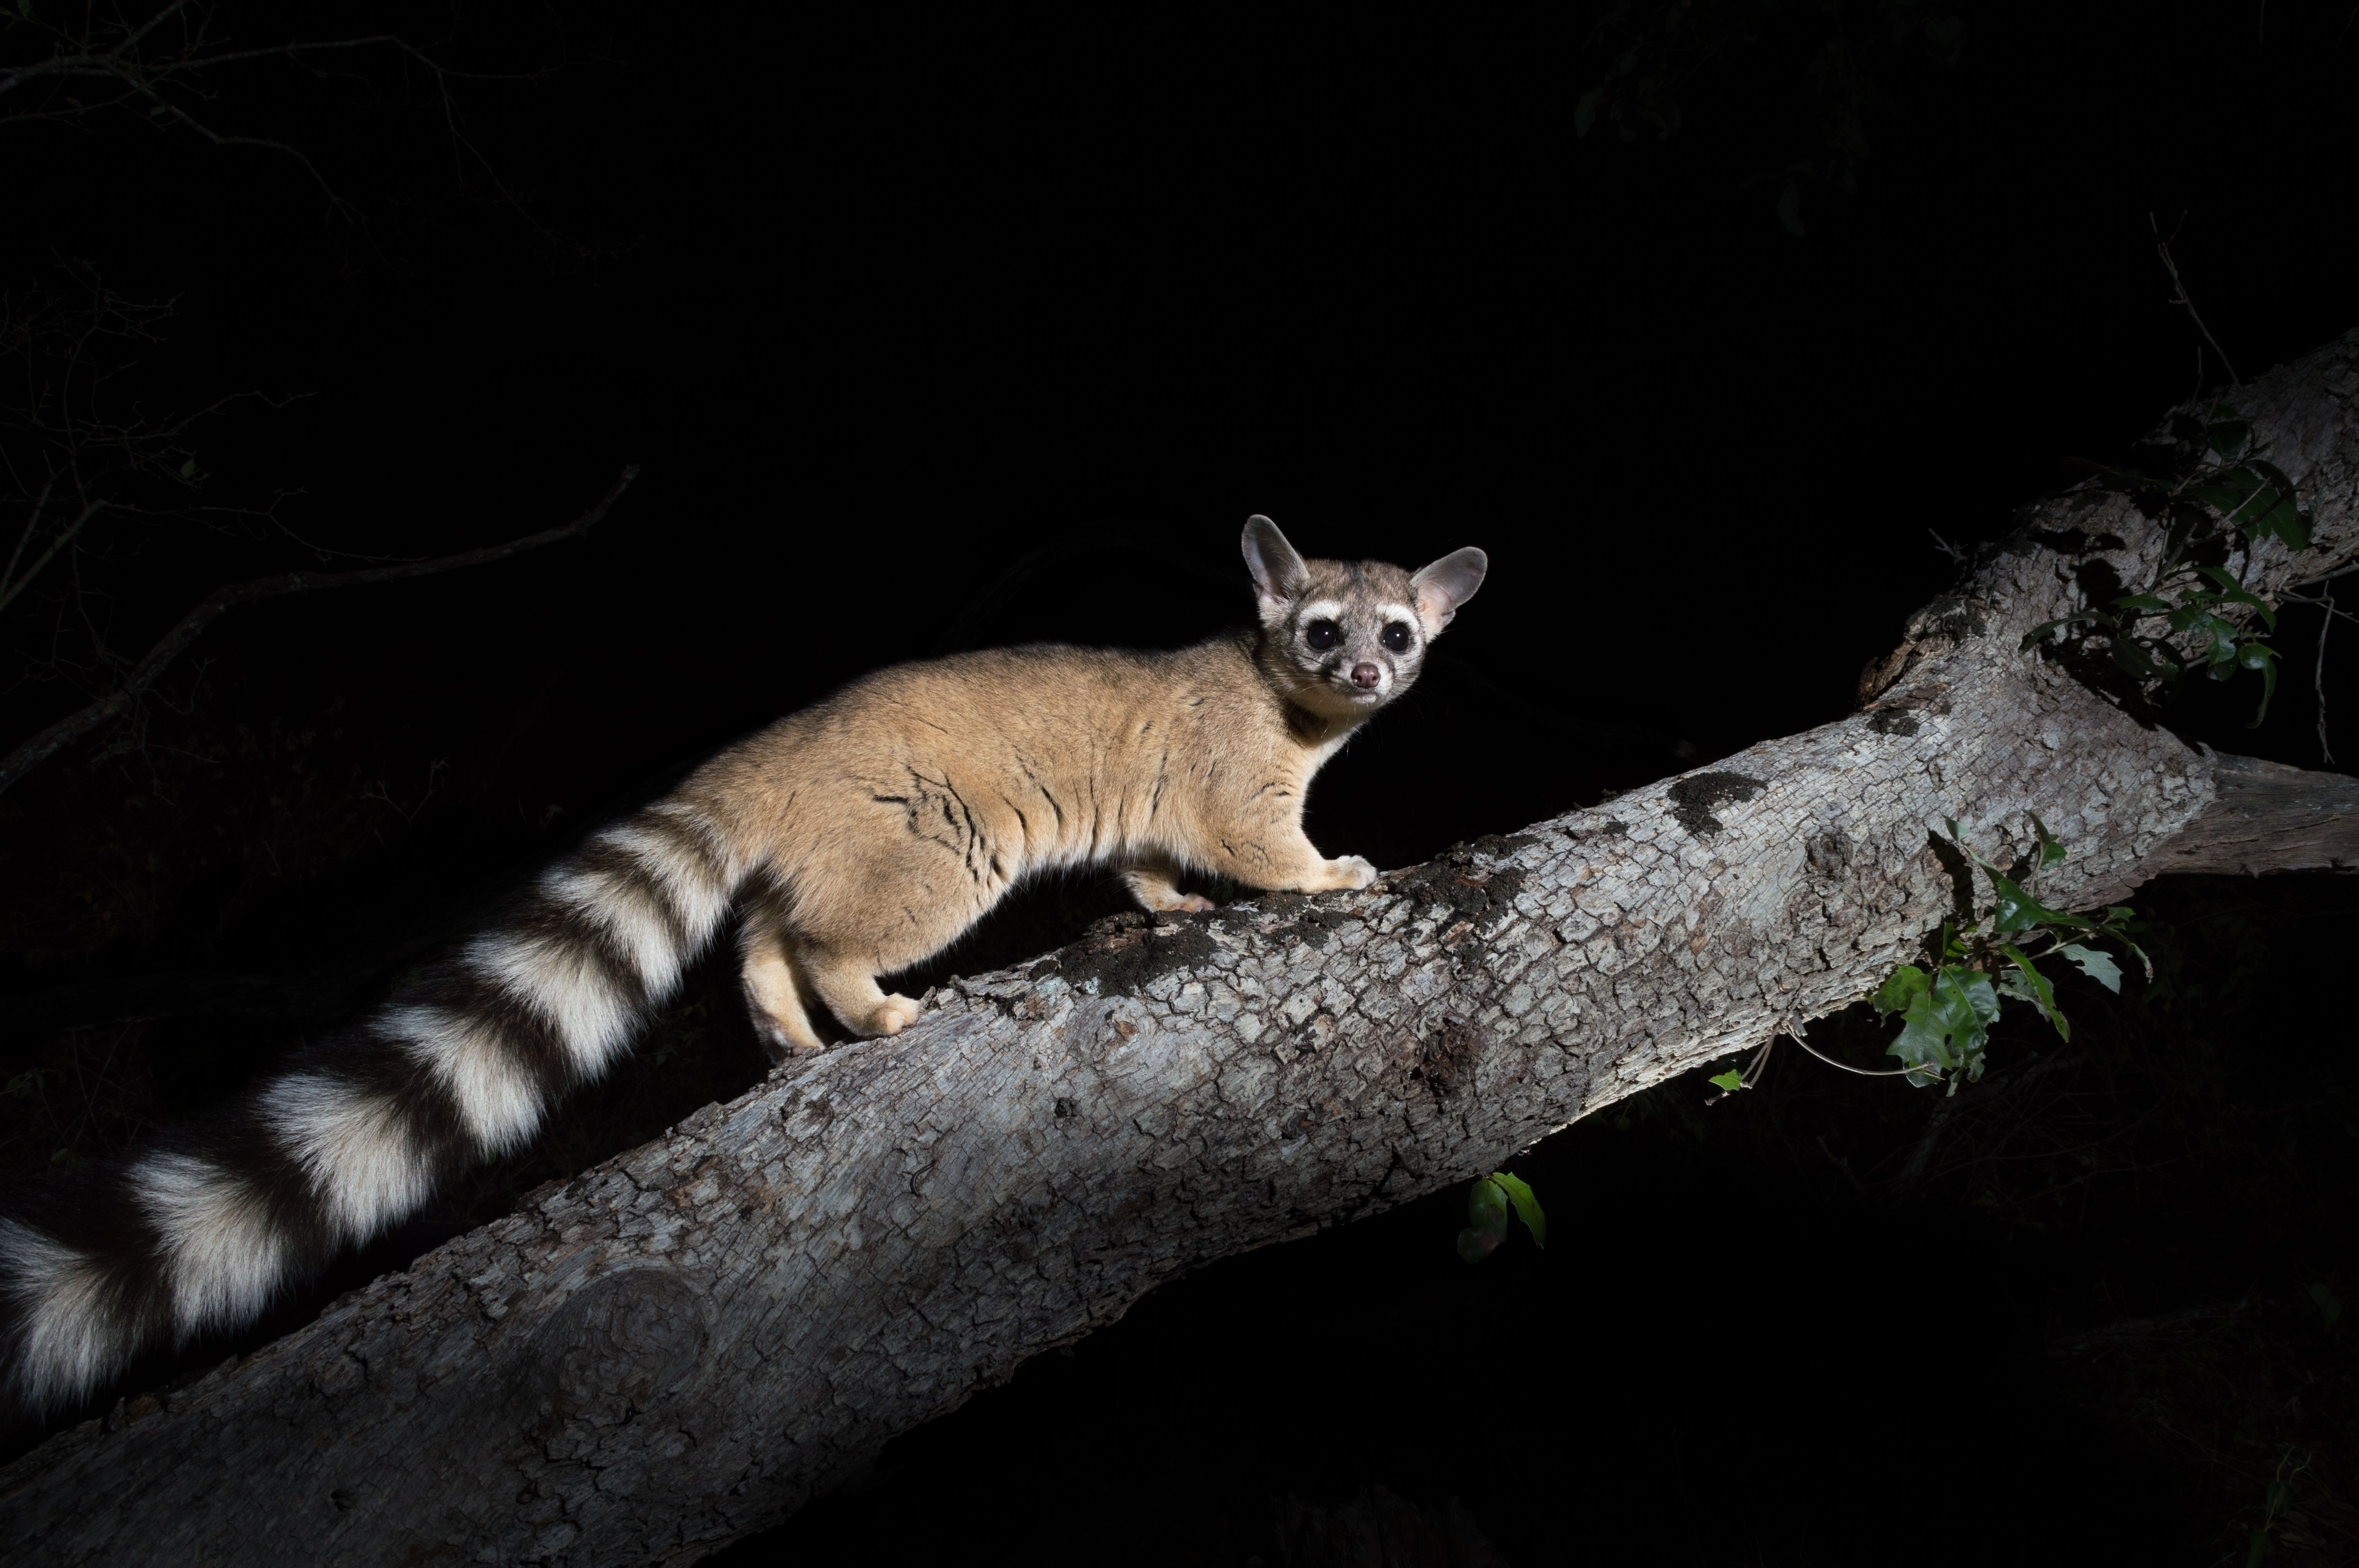 Bassariscus astutus Ringtail Texas hill country, Great